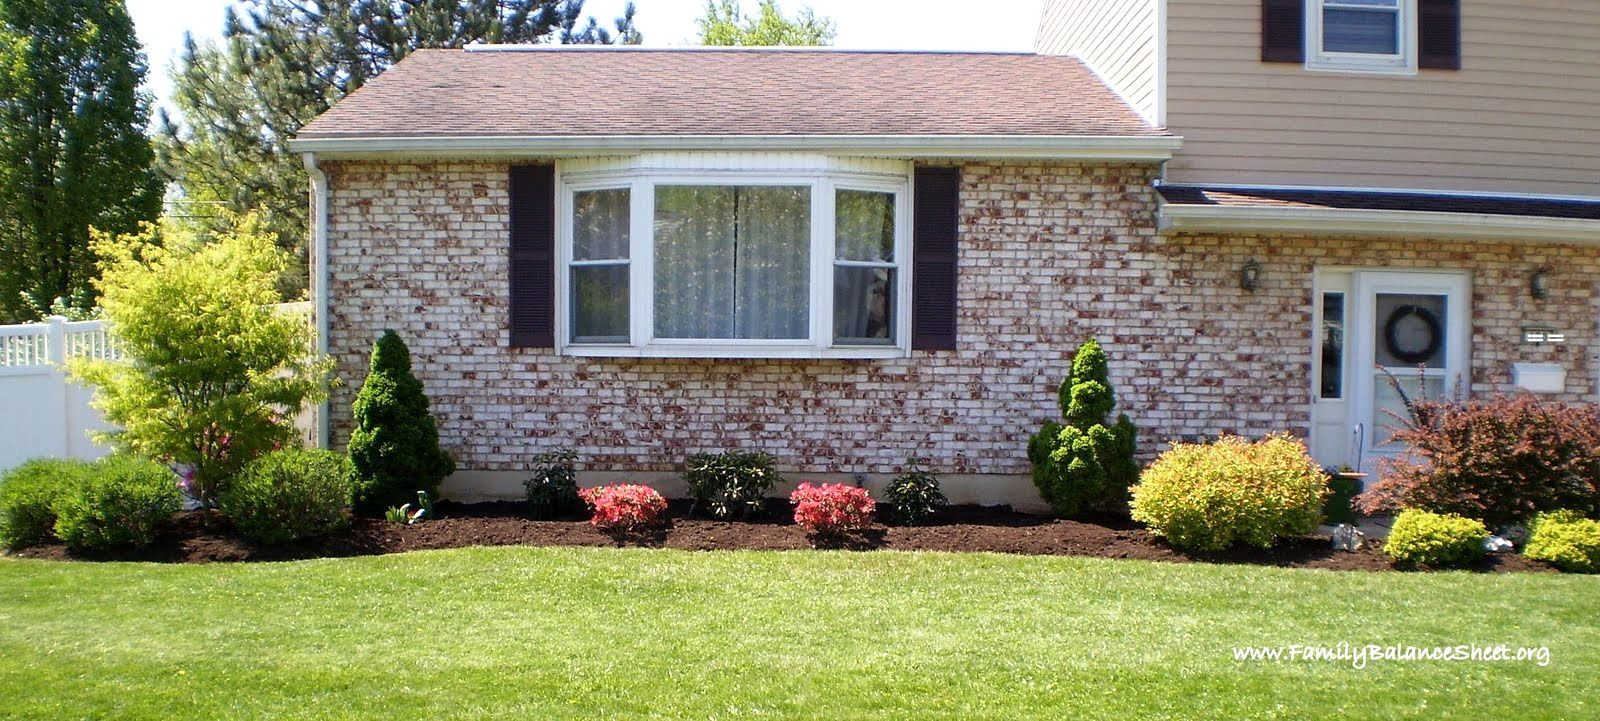 Landscaping ideas front yard ranch style home front yard for Front lawn design ideas